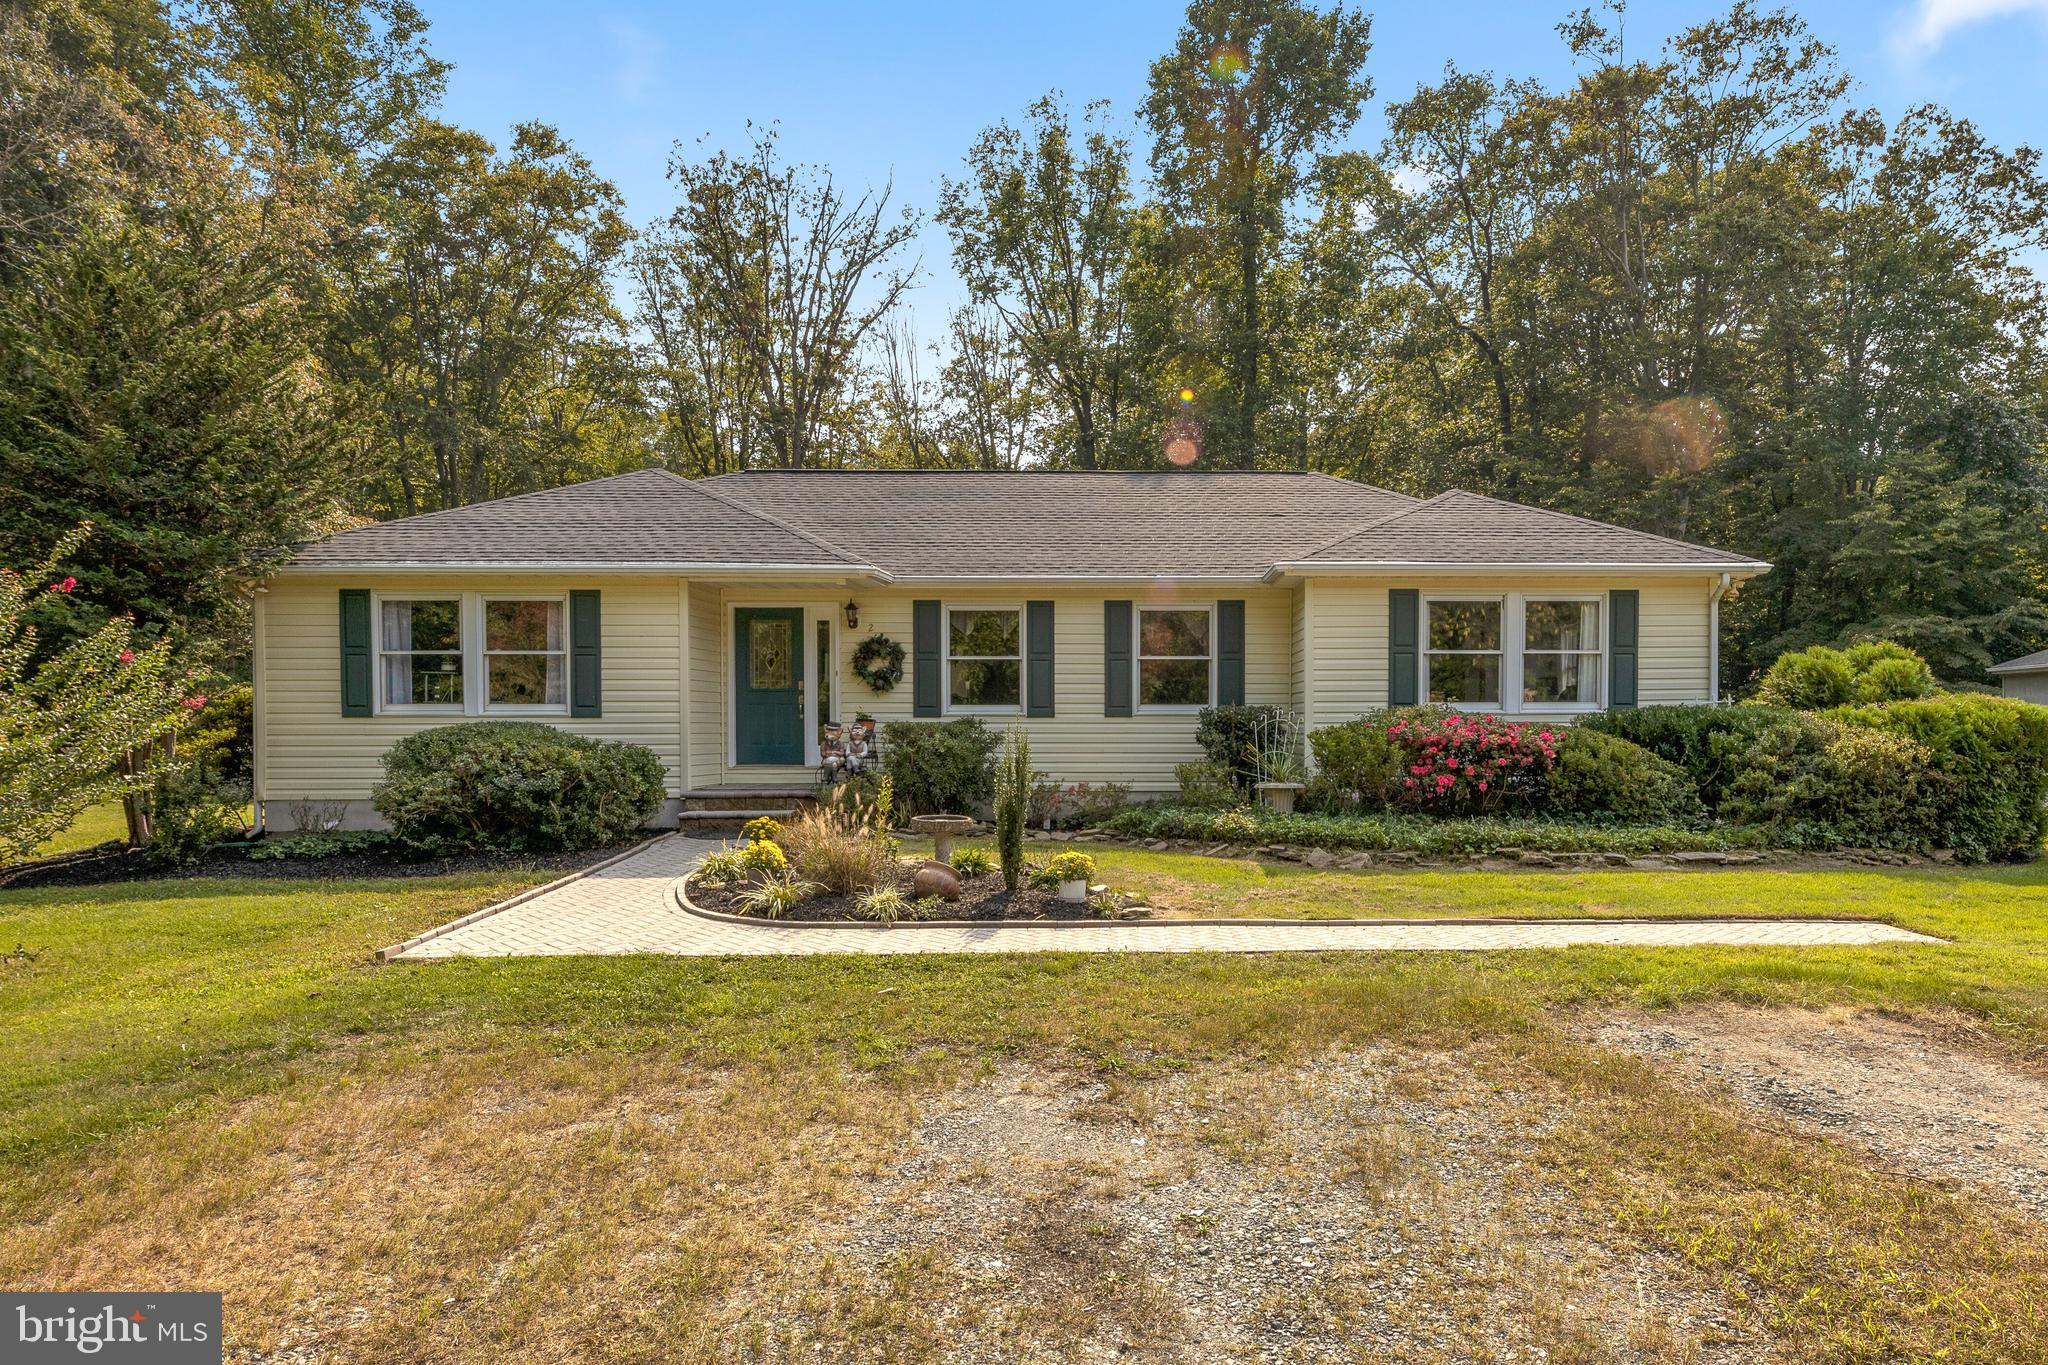 Situated on a private 5.15 acre wooded homesite in Odenton is this well-maintained rancher with an u